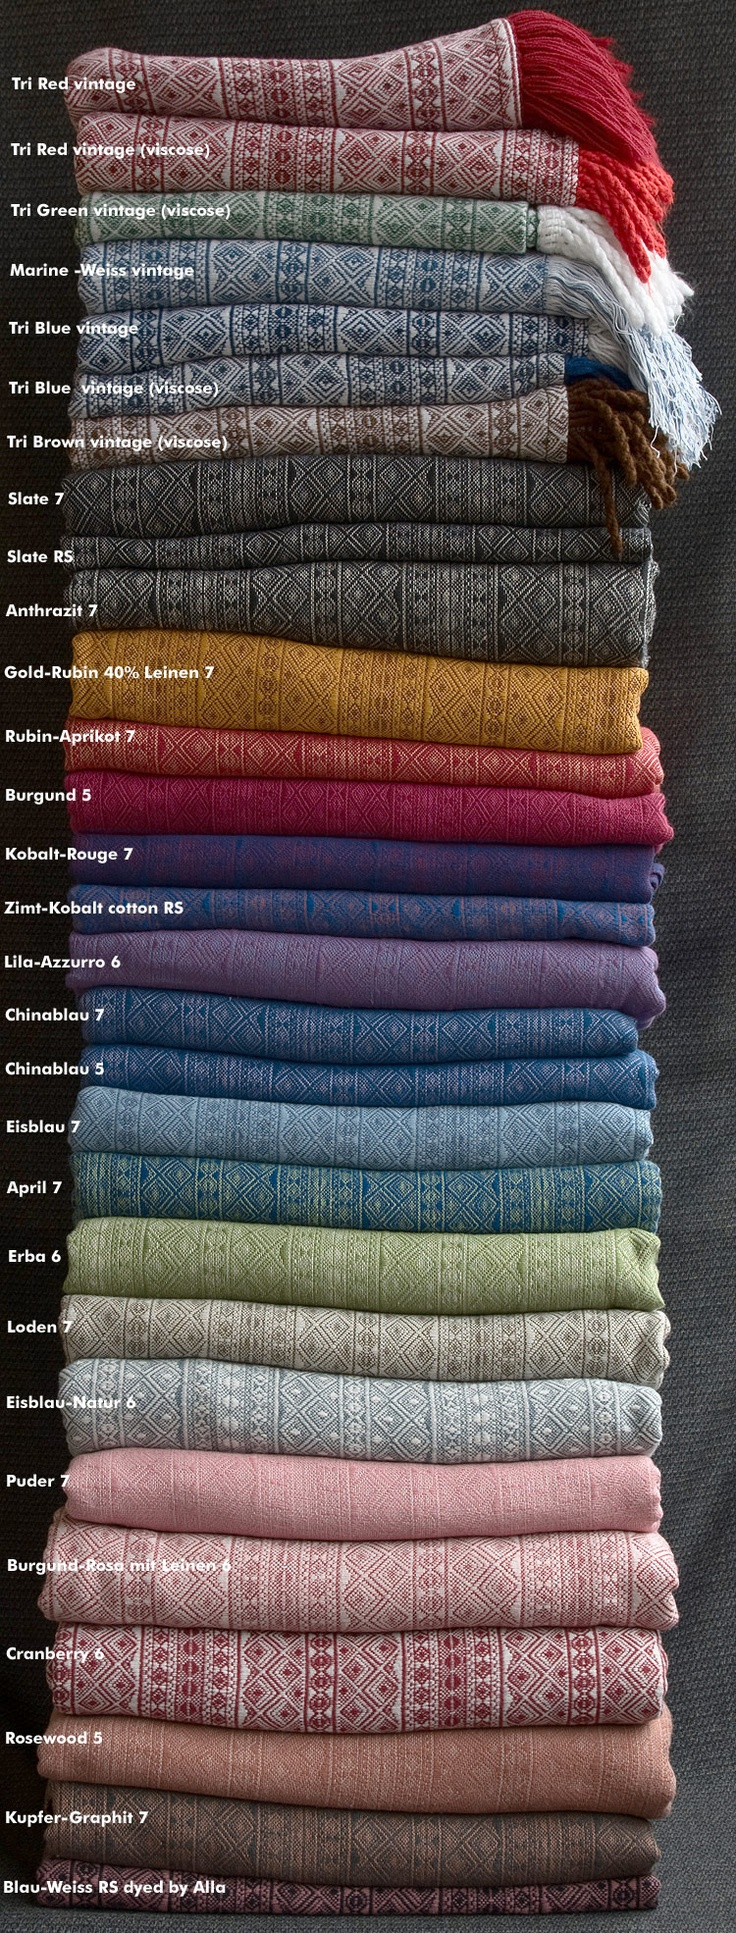 I haven't tried an indio but I am conscerned about the weave, they look a bit loose, Perhaps not...but Ahhhhh heavenly choir!  Have heard nothing but good things :)  an the Didymos Indios - in almost every colour